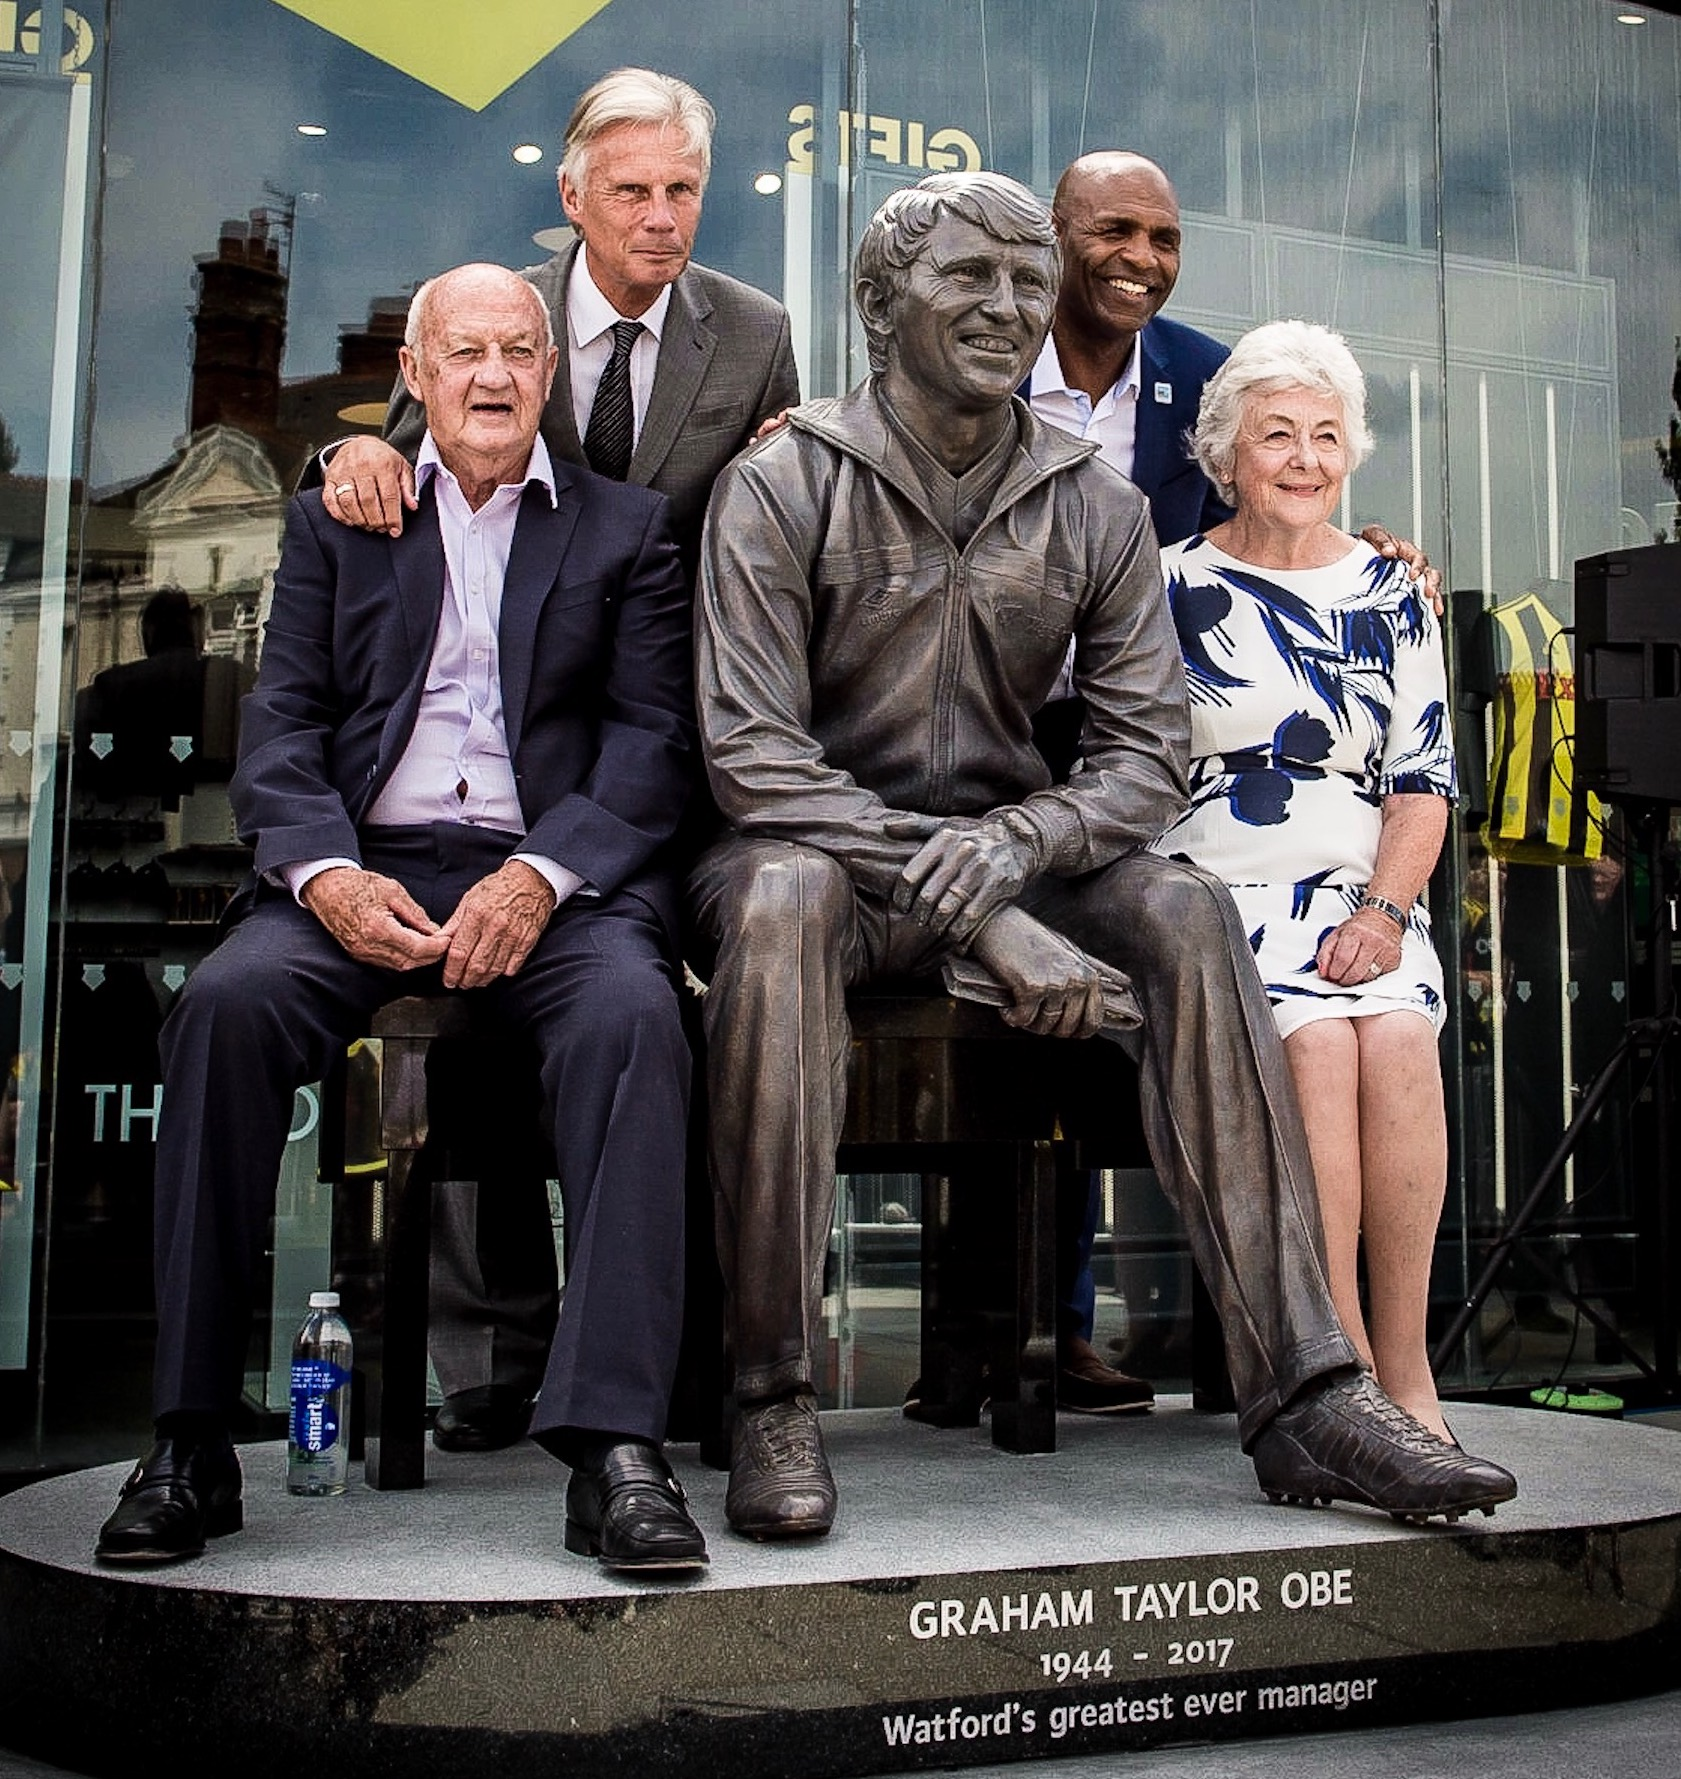 Tom Walley, John Ward, Luther Blissett and Rita Taylor with the statue of Graham Taylor in Vicarage Road. Walley and Blissett were two of the players Graham inherited when he took over at Watford in 1977. Ward, his friend and former team-mate from Lincoln City, came a little later. Photograph by Simon Gill.